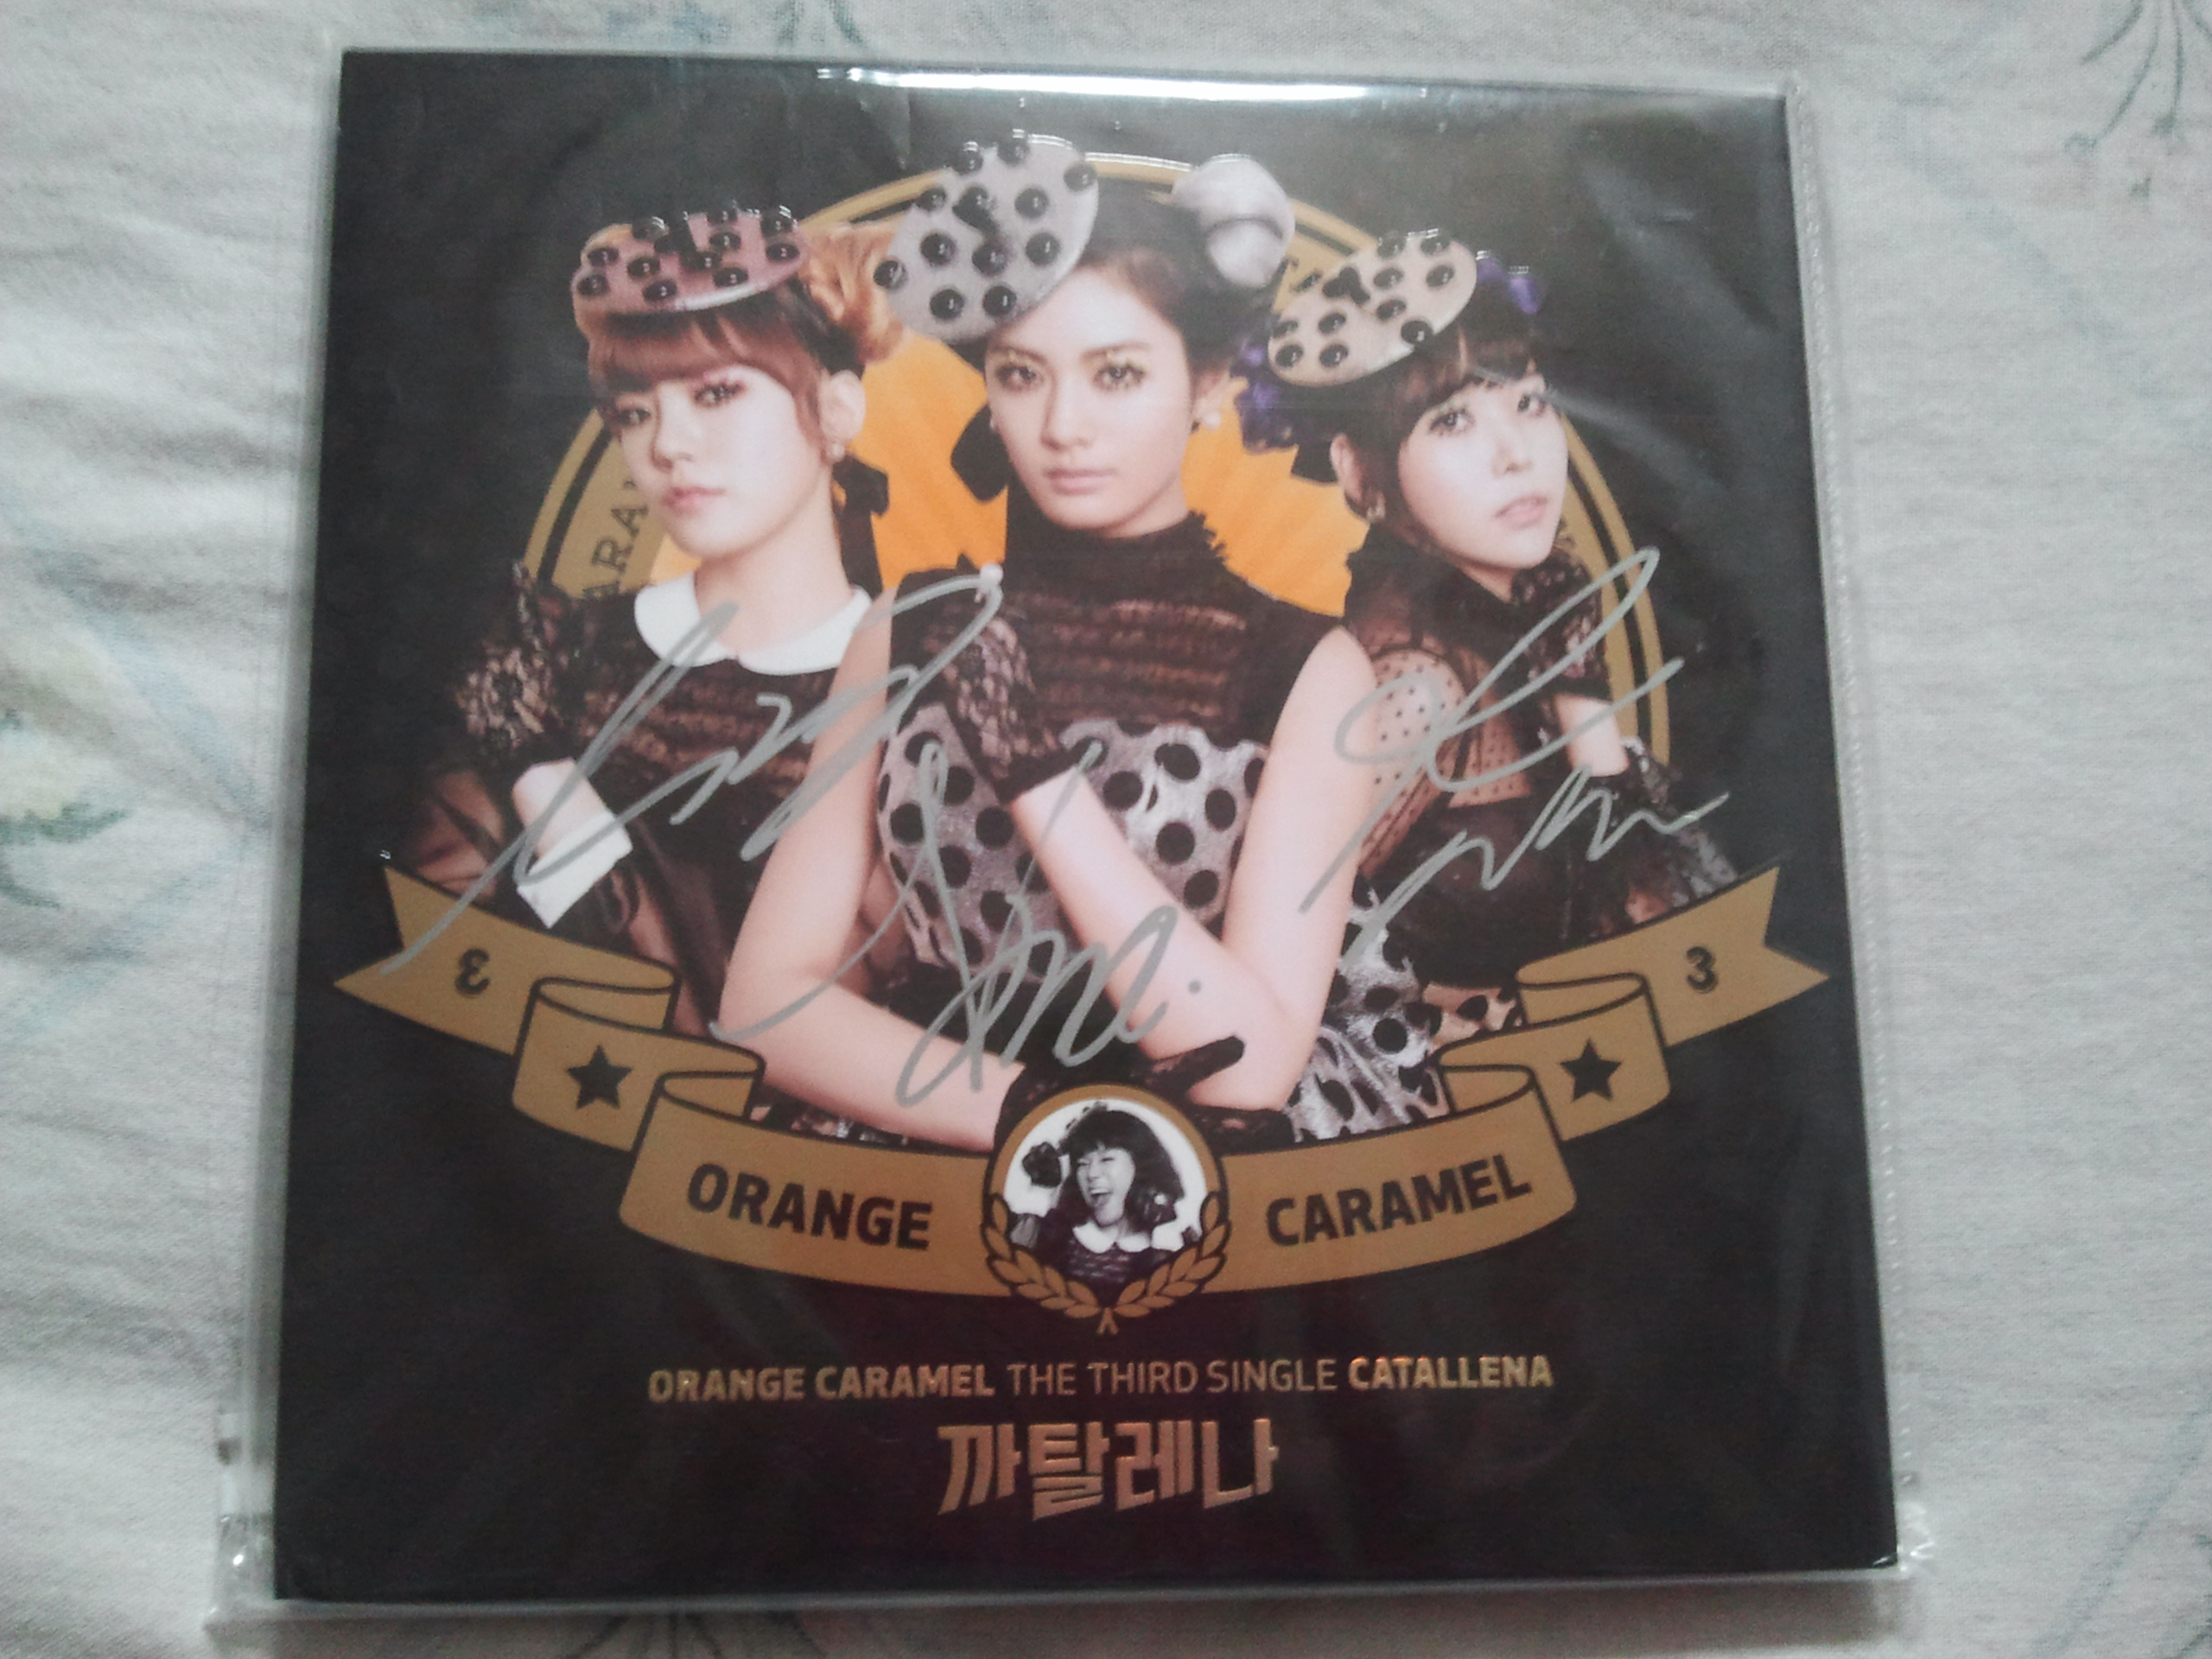 [DISCUSSION] Are the AS members changing their autographs? Calling detective PGZ and PBZ! 93631720140820134219